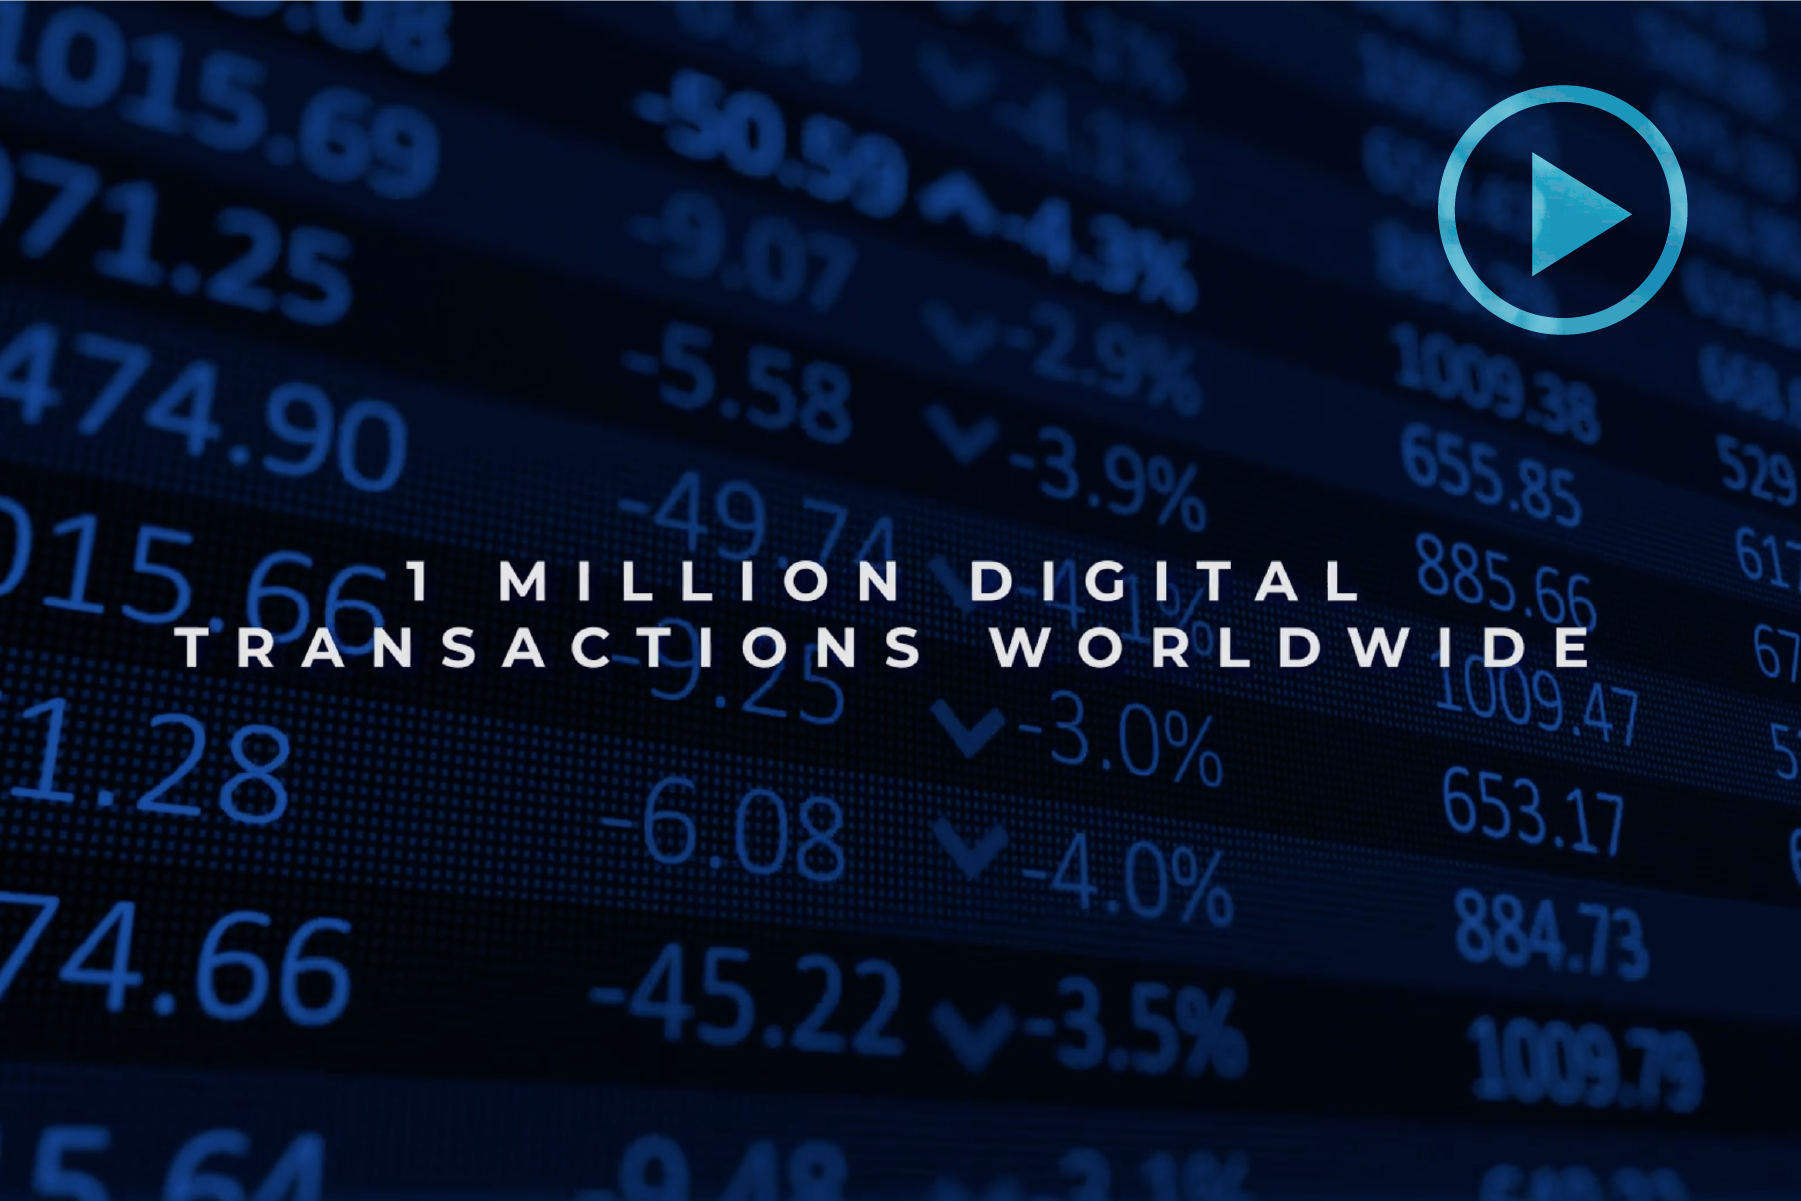 Take A Sneak Peek At GVG's Technological Approach To Digital Money Compliance